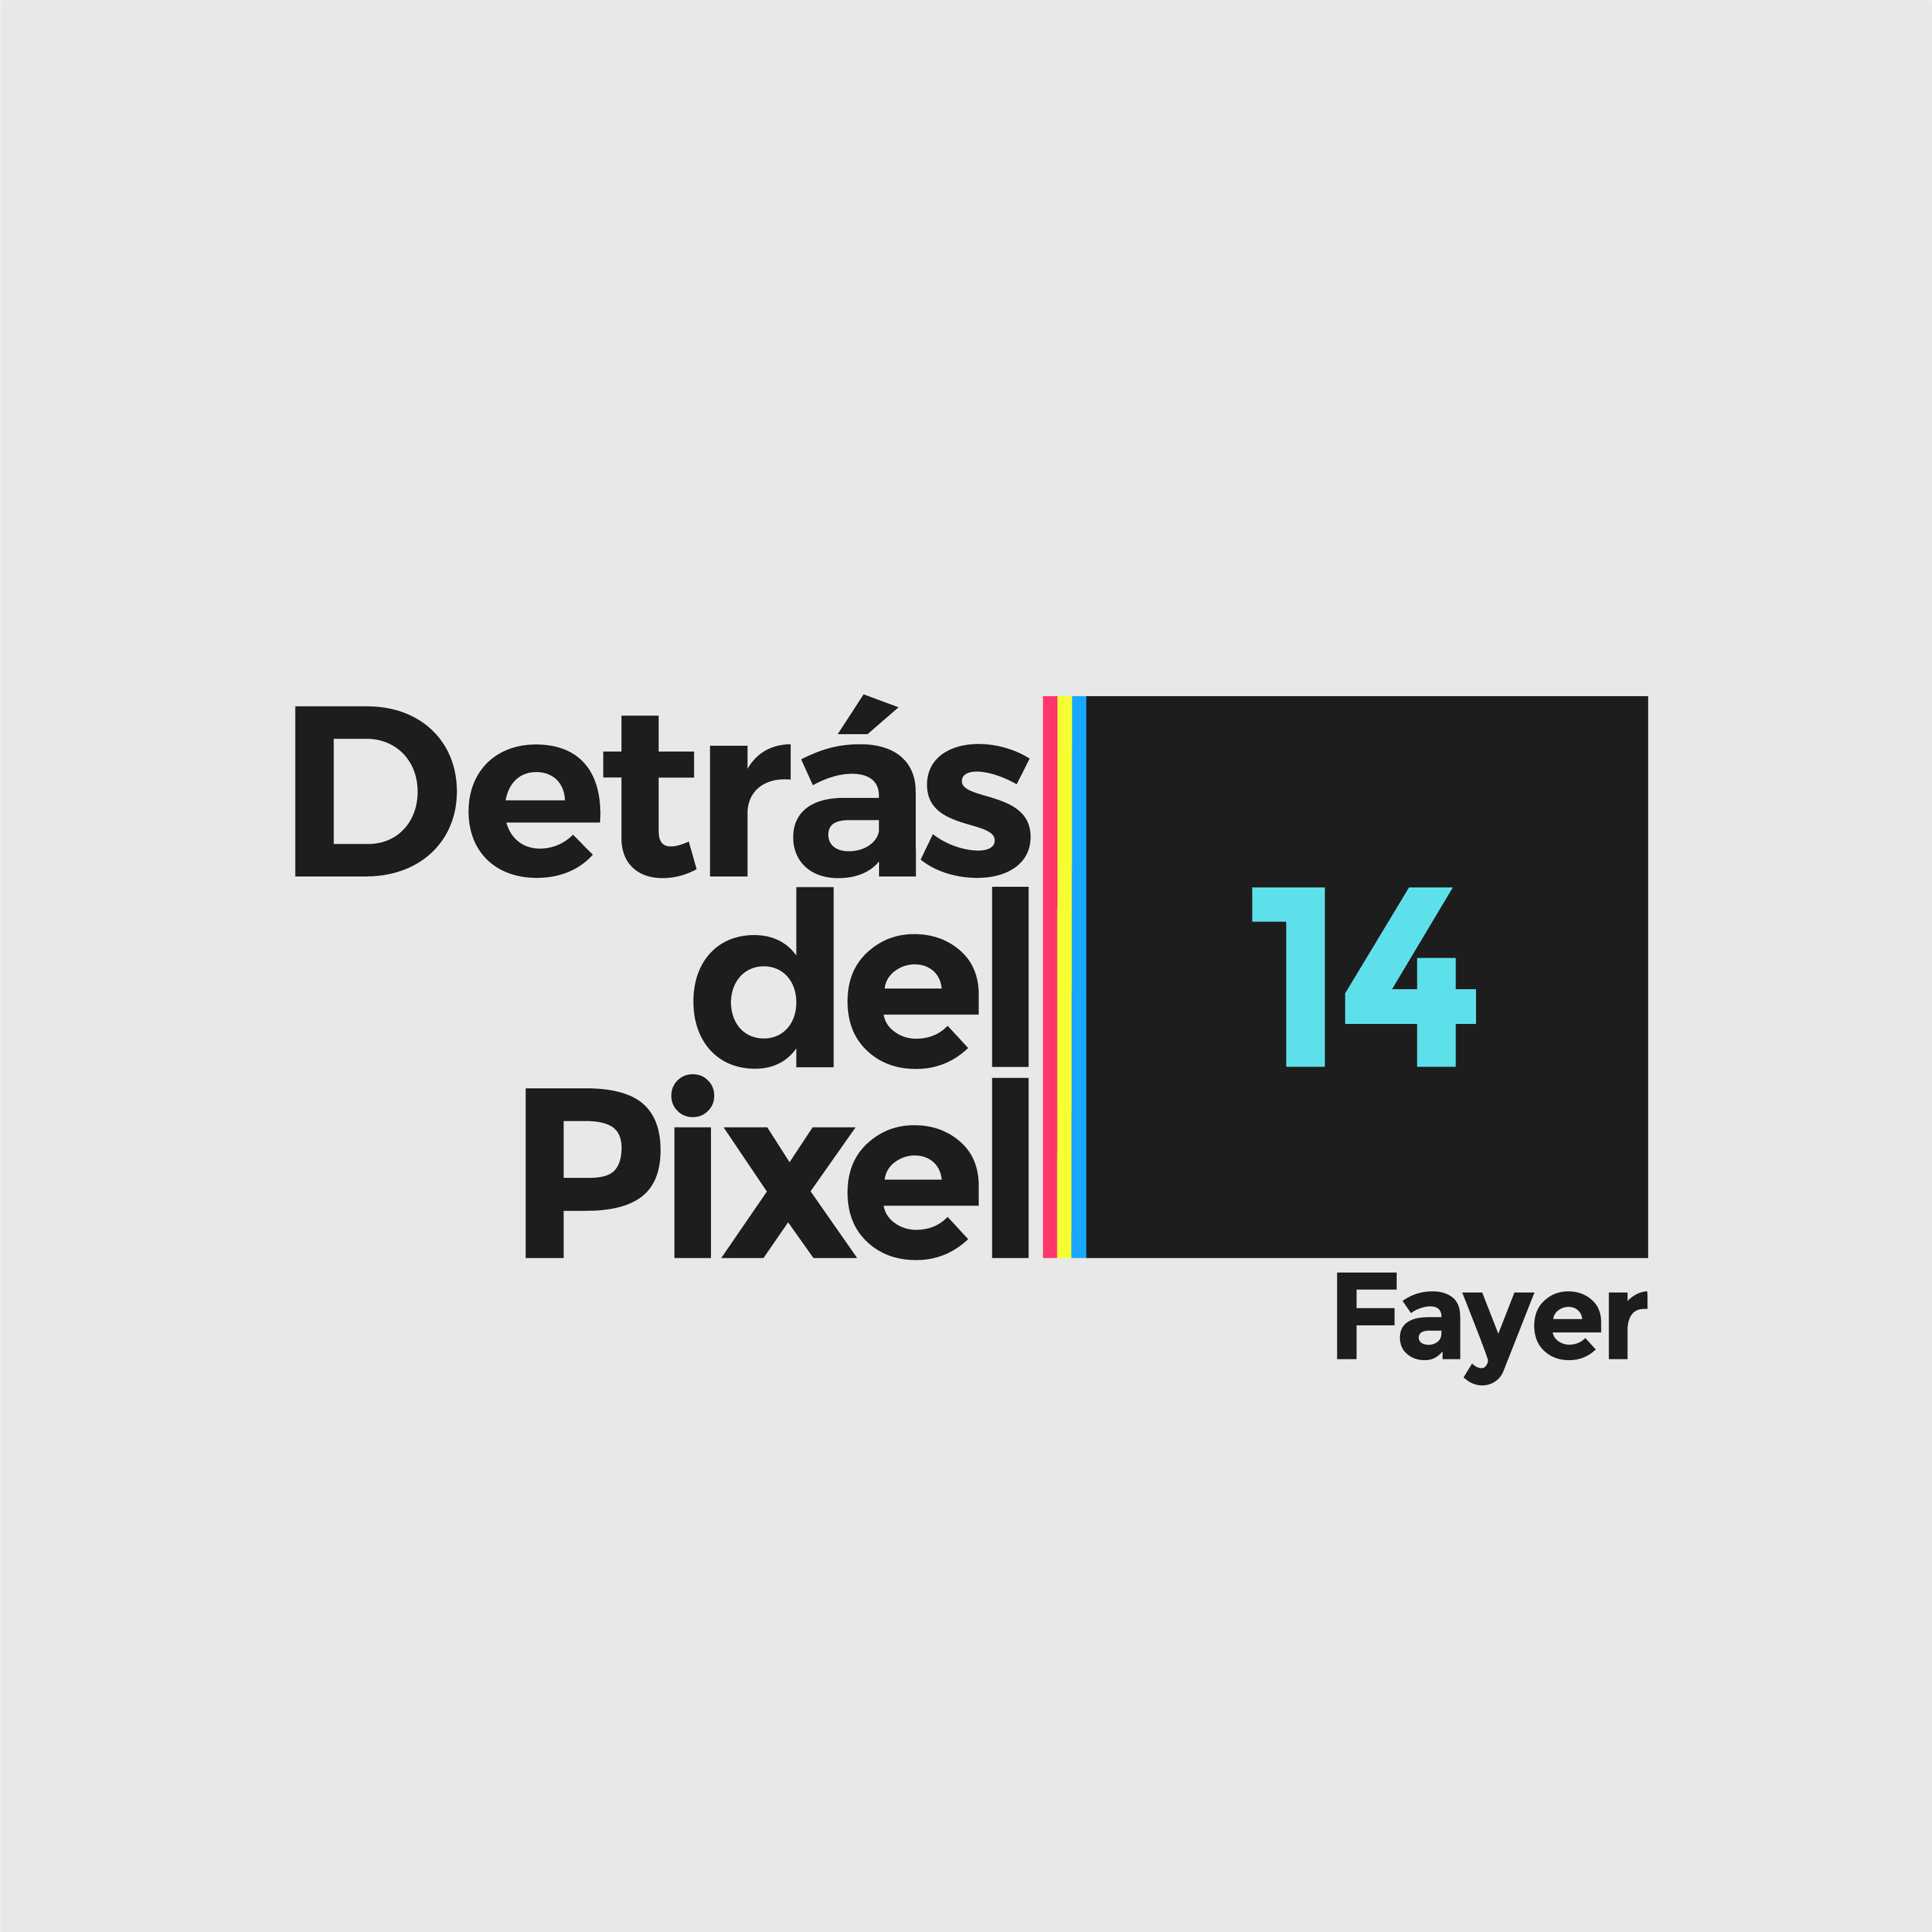 14-fayer